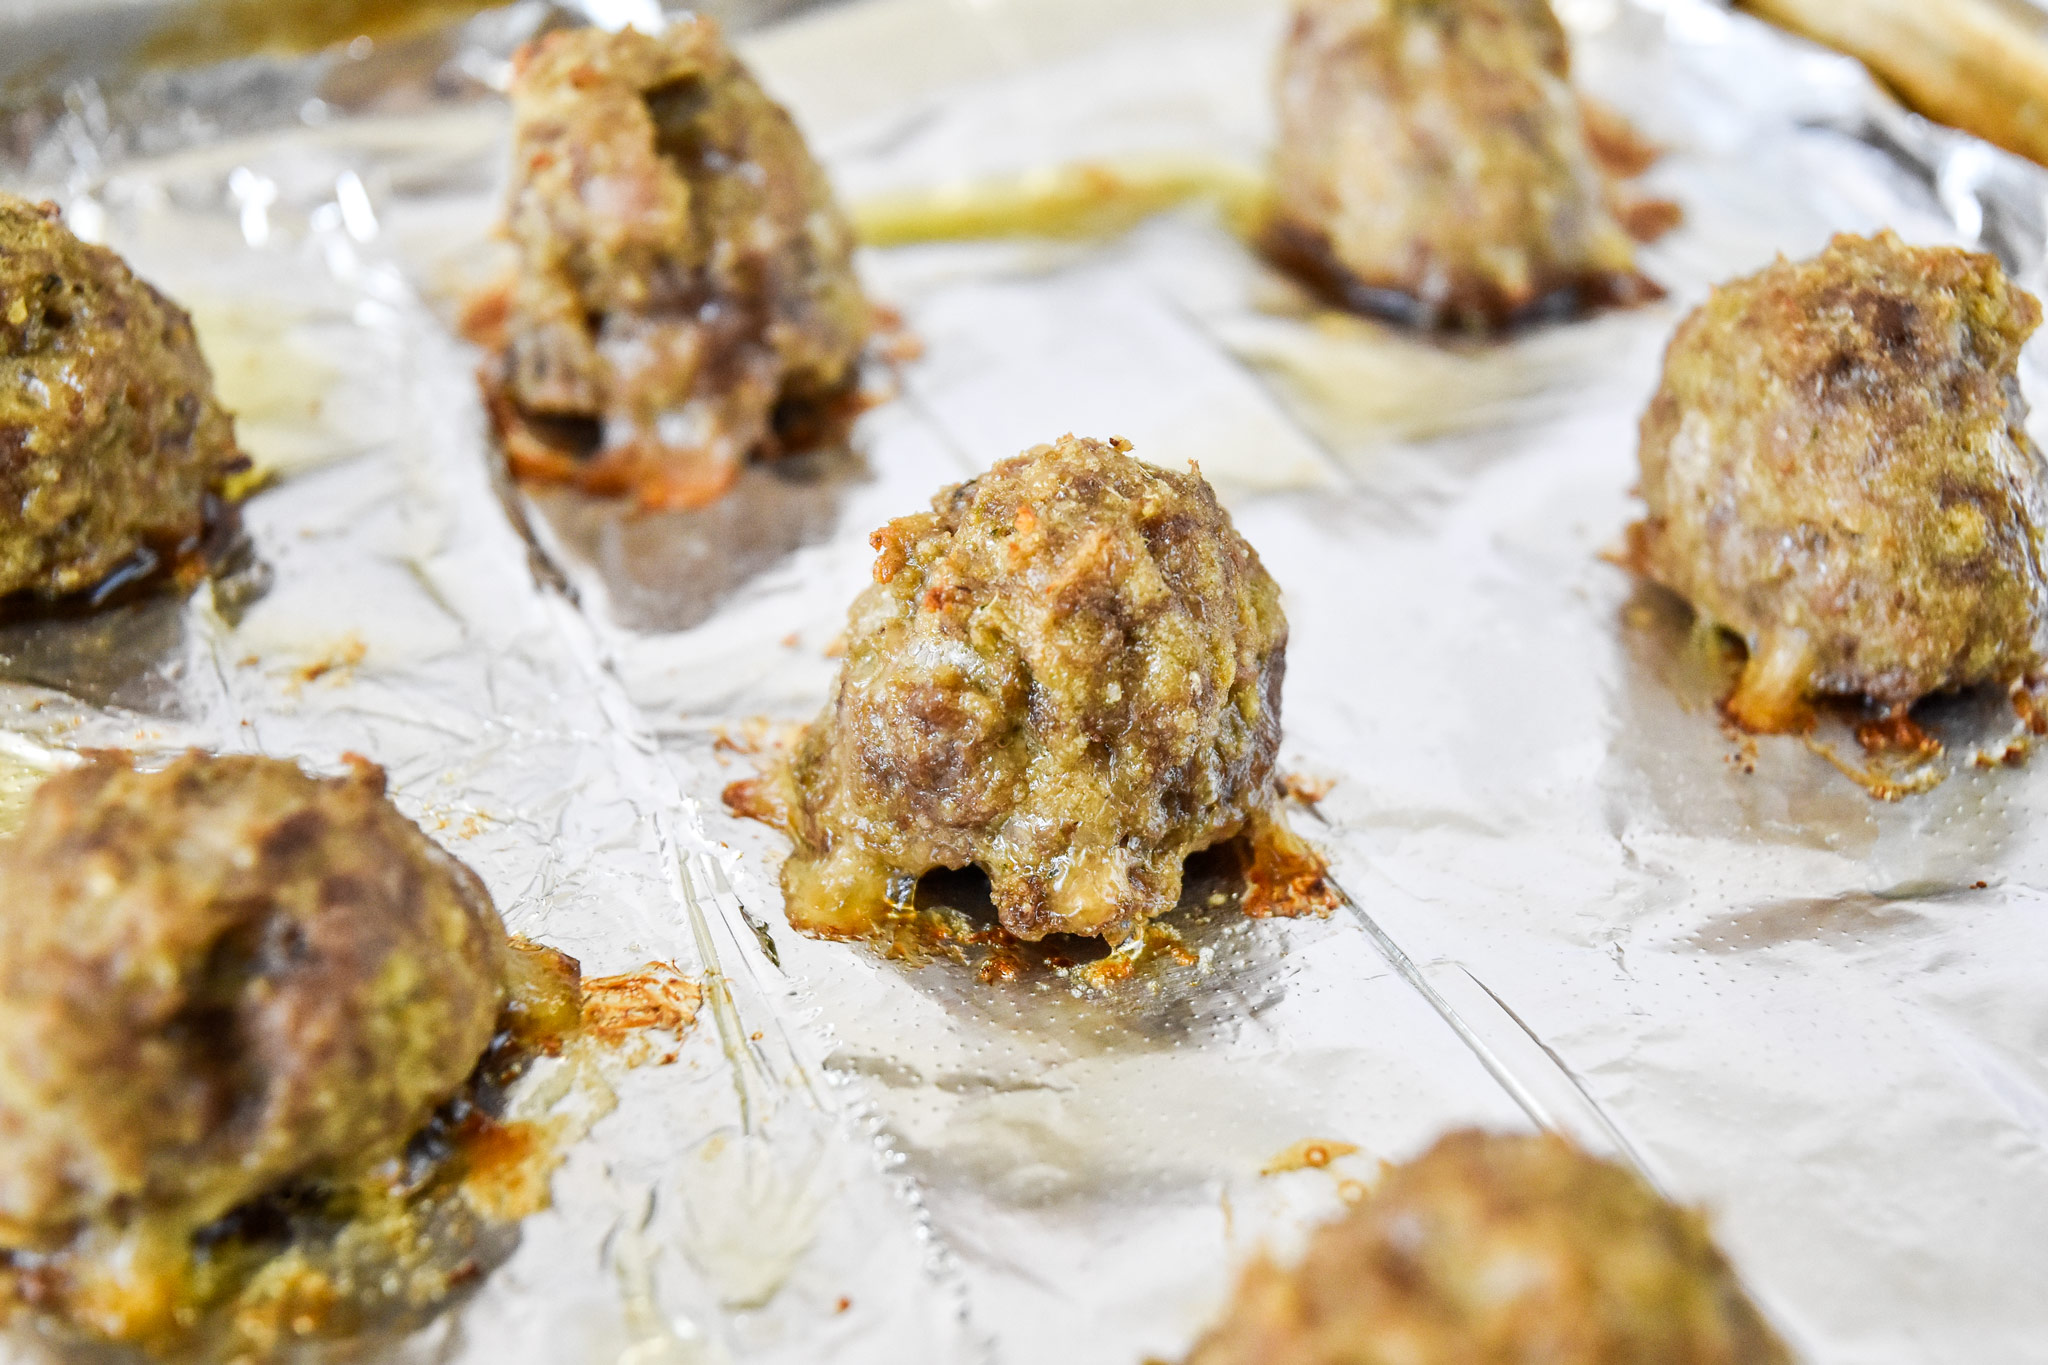 fresh cooked meatballs on a foil lined baking sheet.